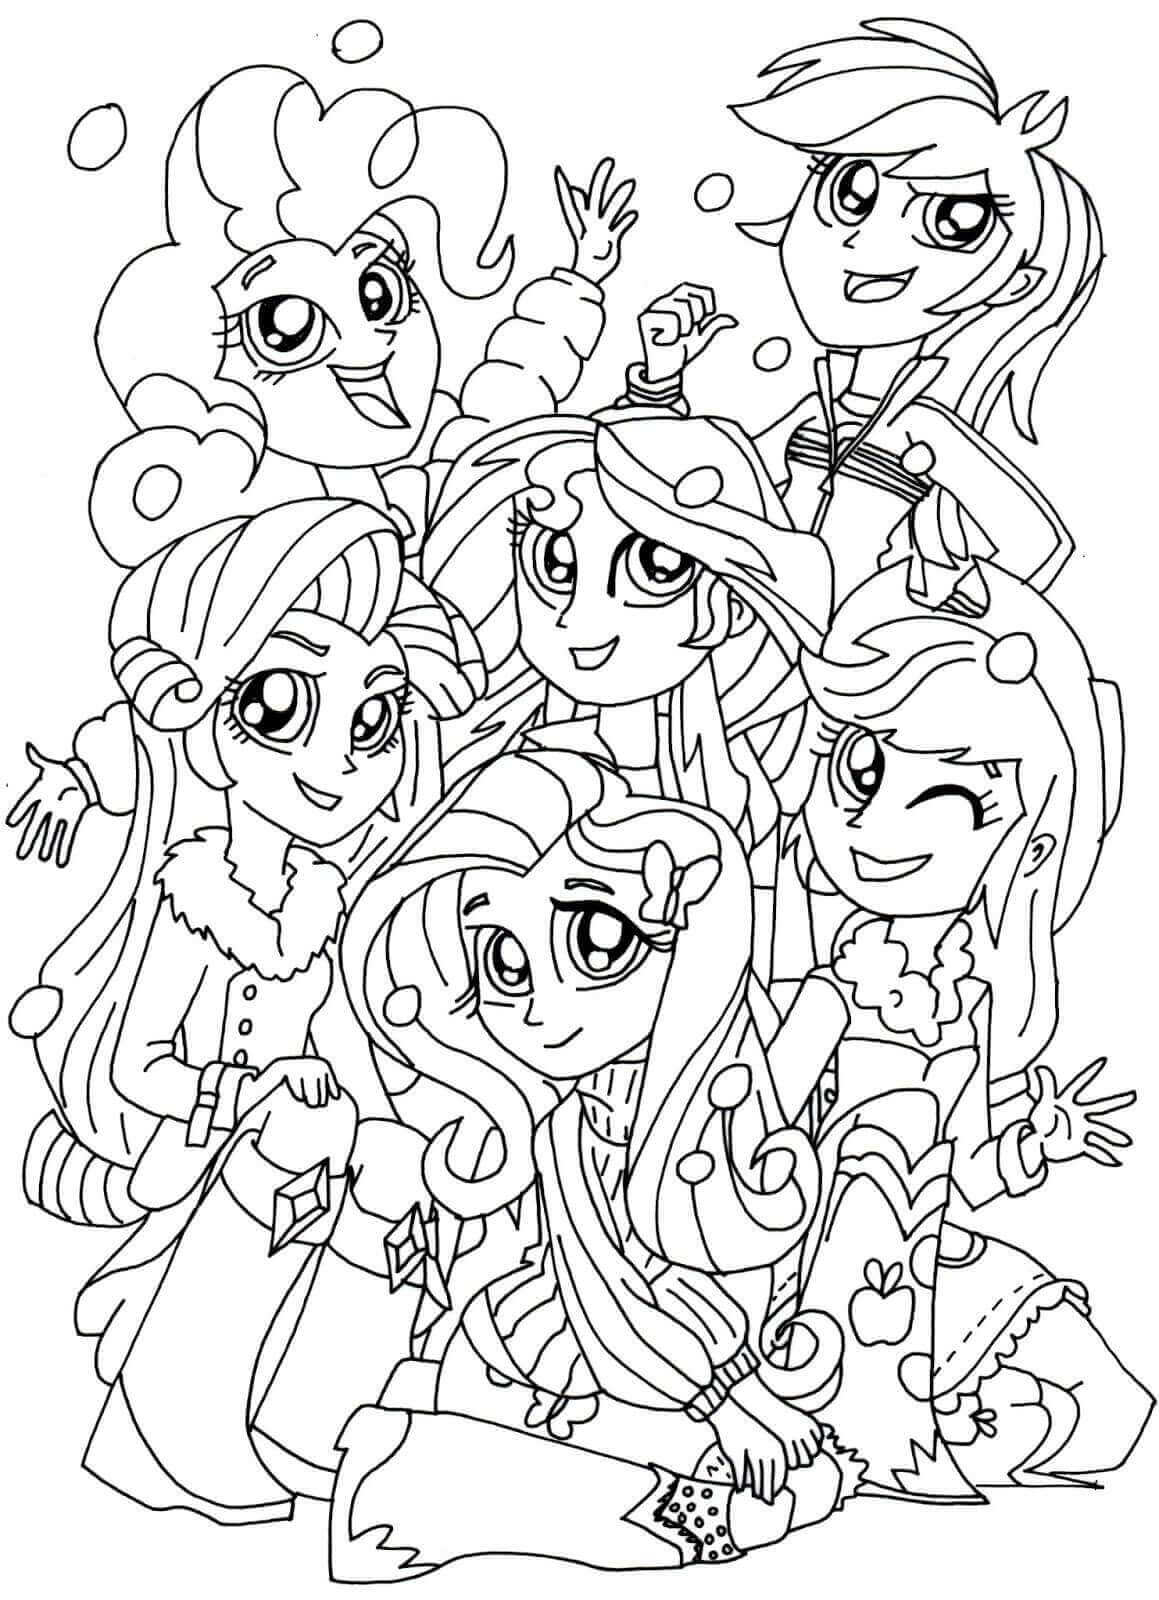 coloring pages of little girls 16 best strawberry shortcake coloring pages images on girls coloring of little pages